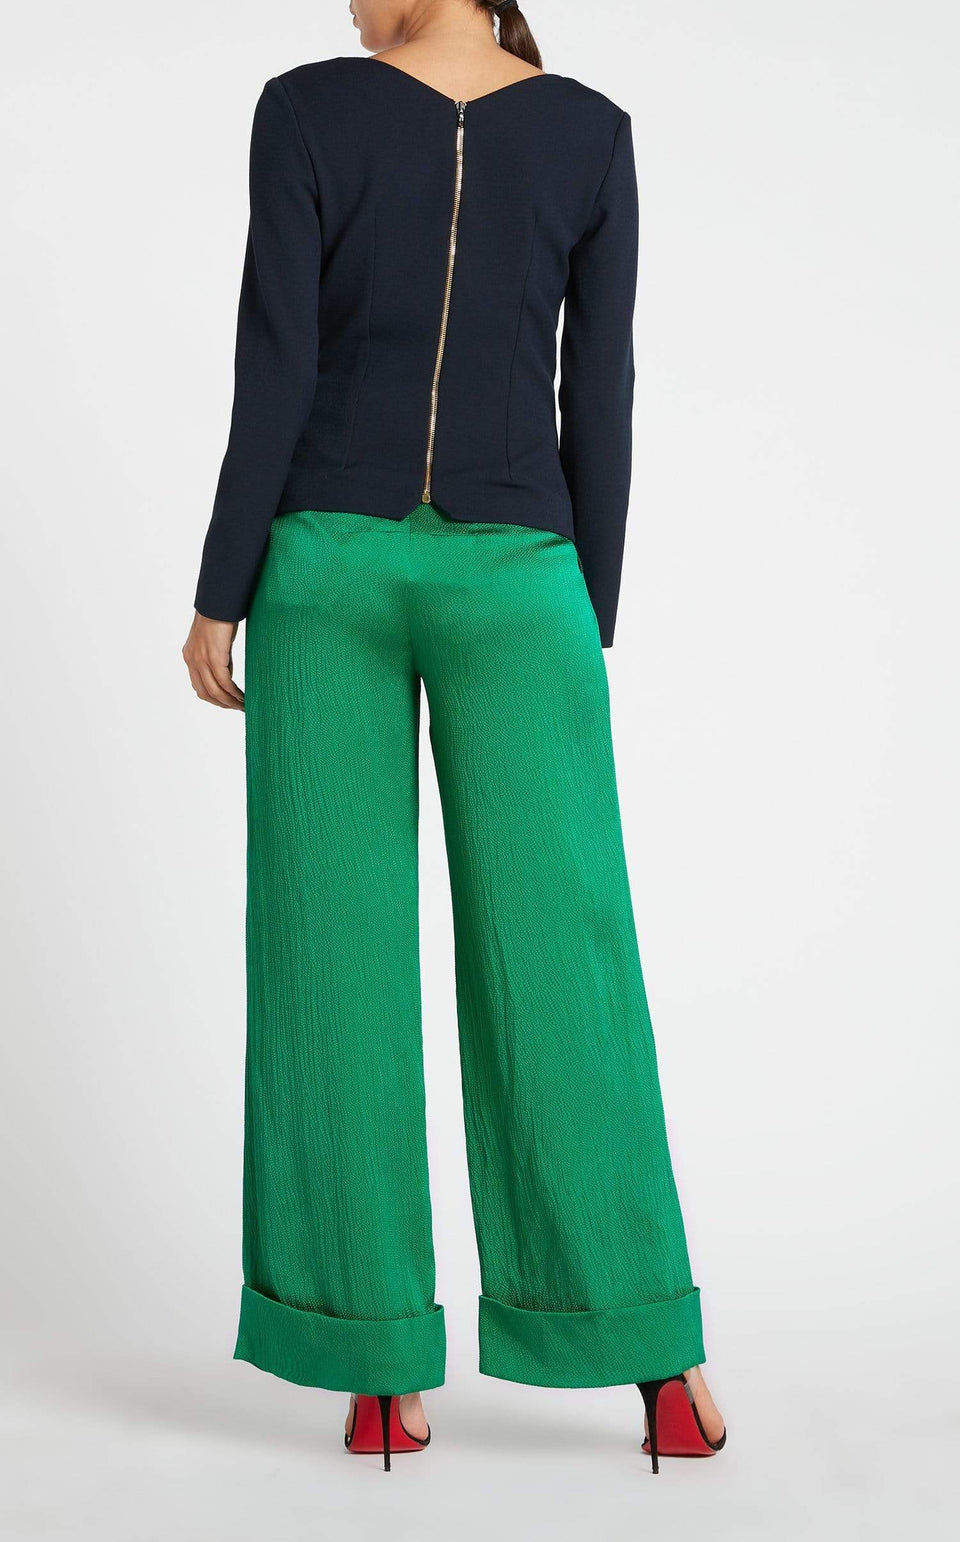 Perkins Trouser In Emerald from Roland Mouret